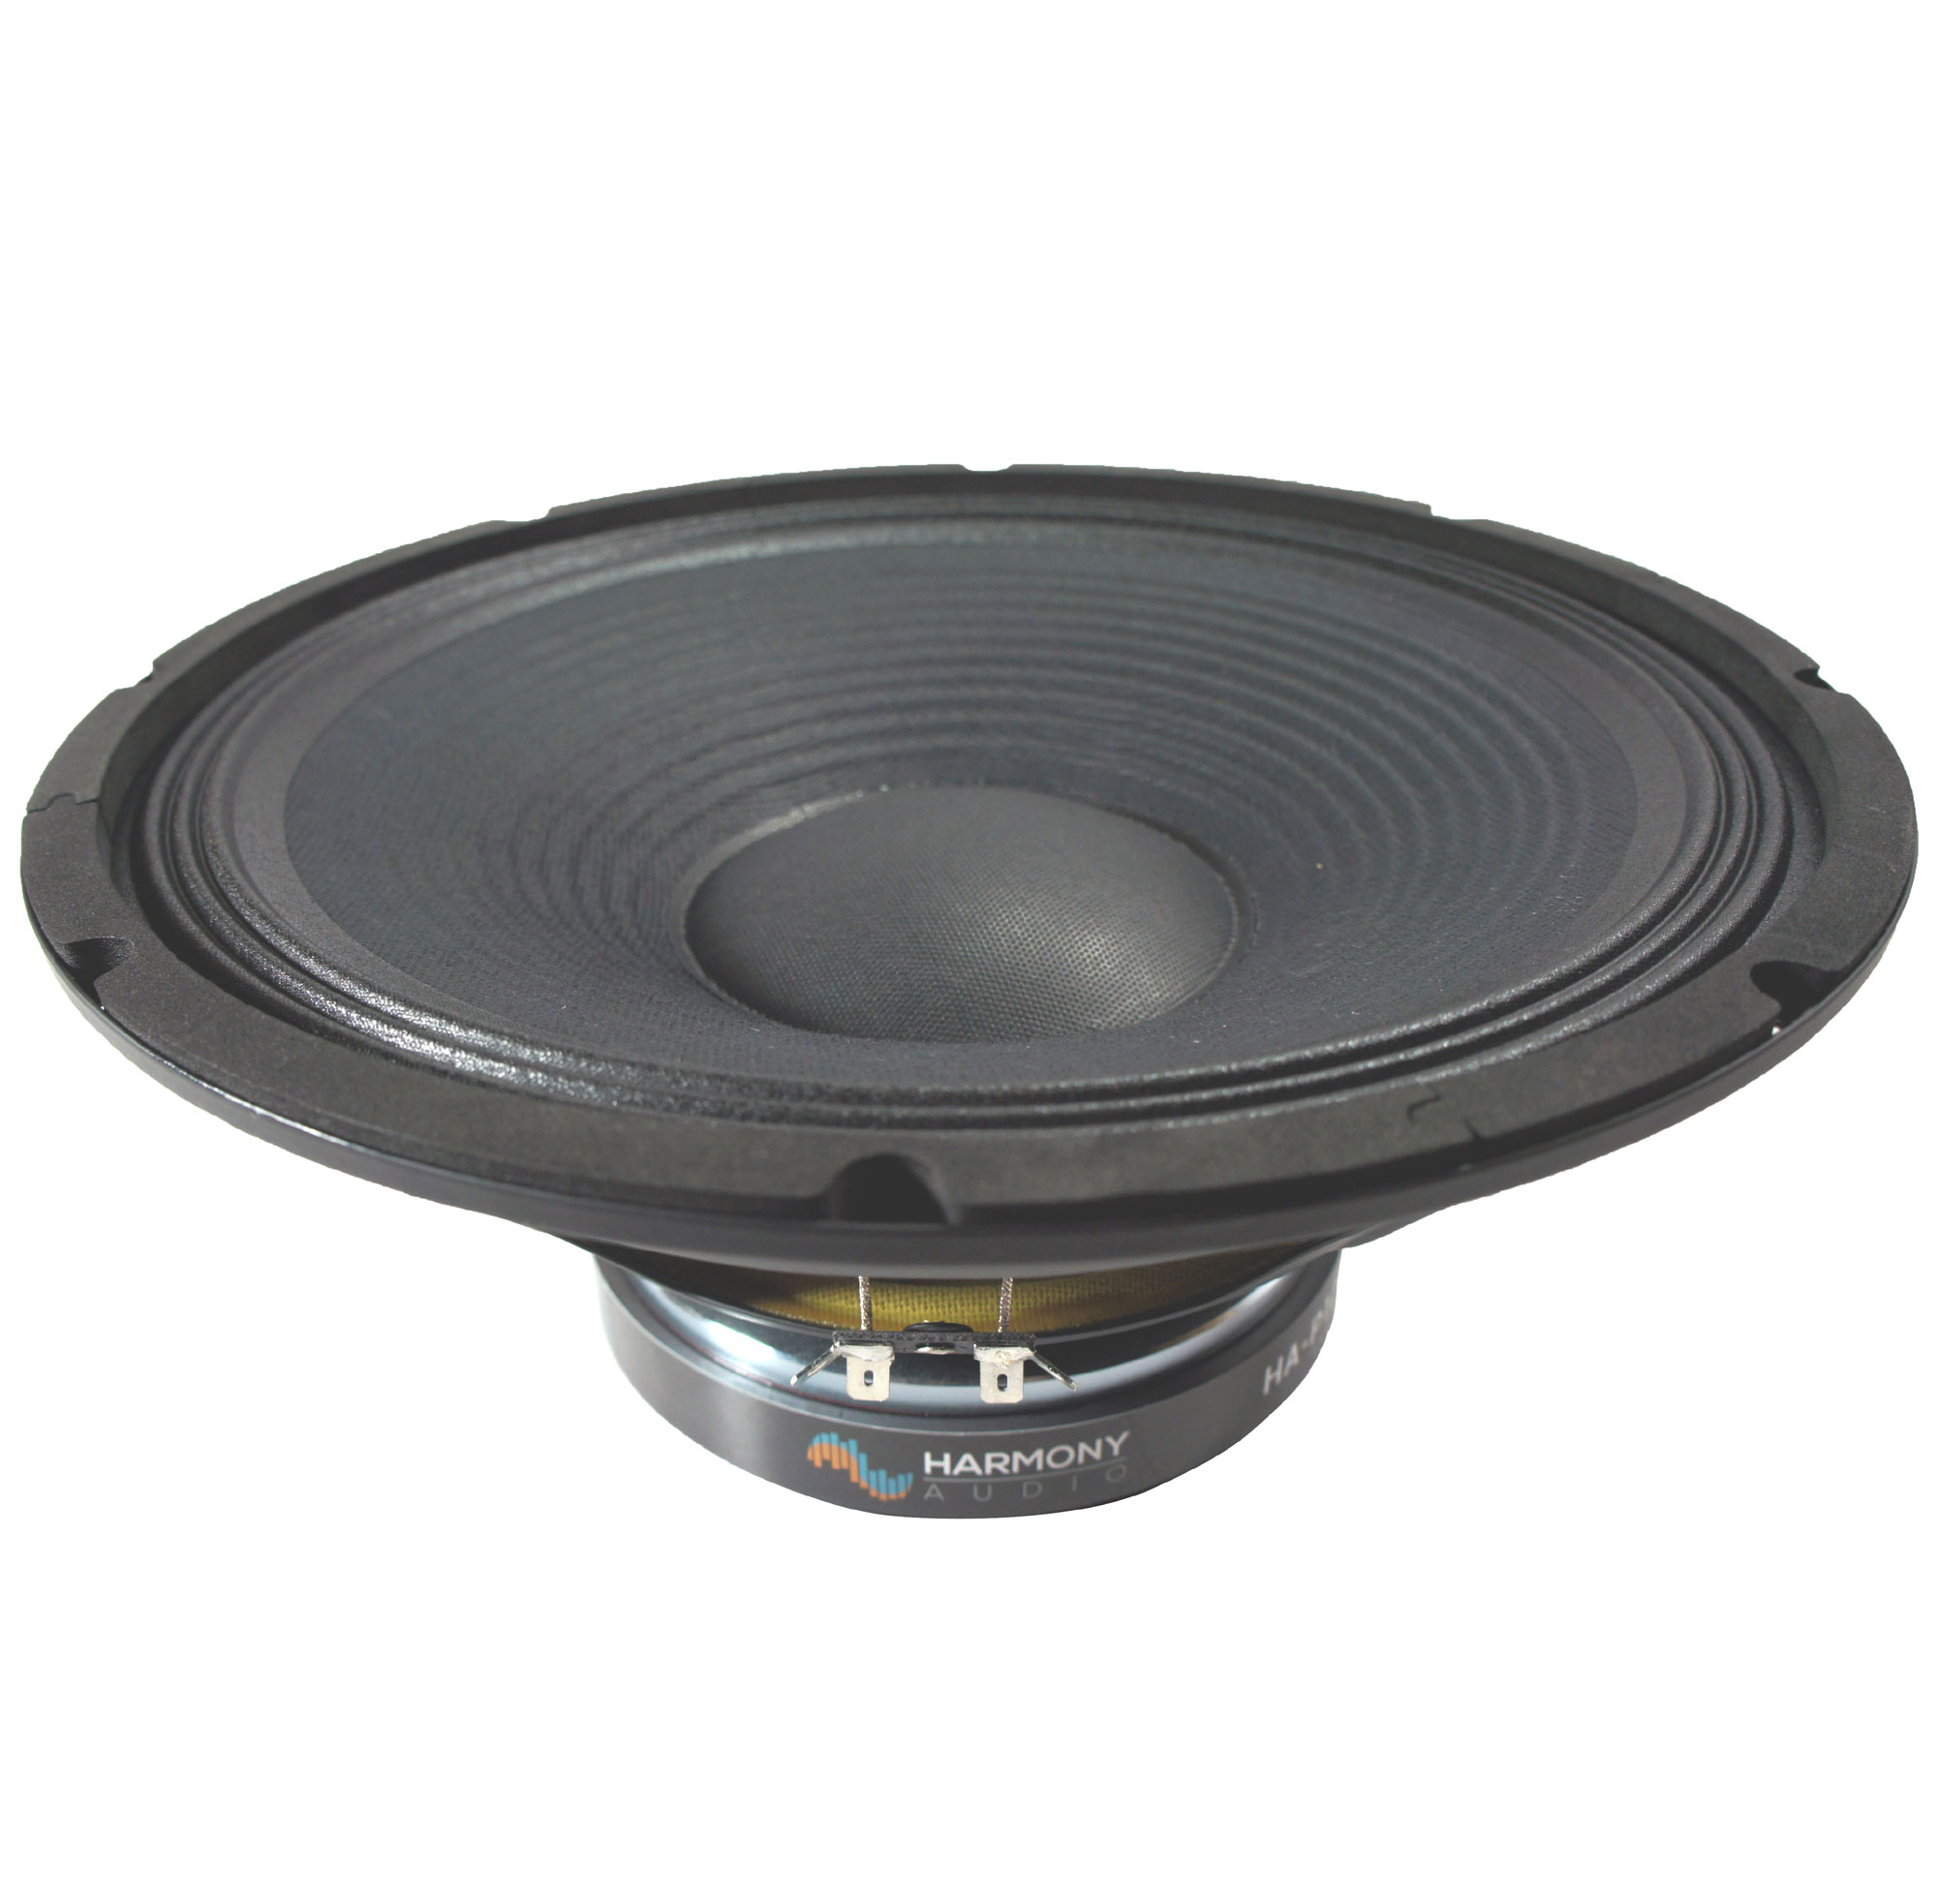 """Harmony HA-P12WS8 Replacement 12"""" PA Speaker Woofer for Mackie Thump12BST"""